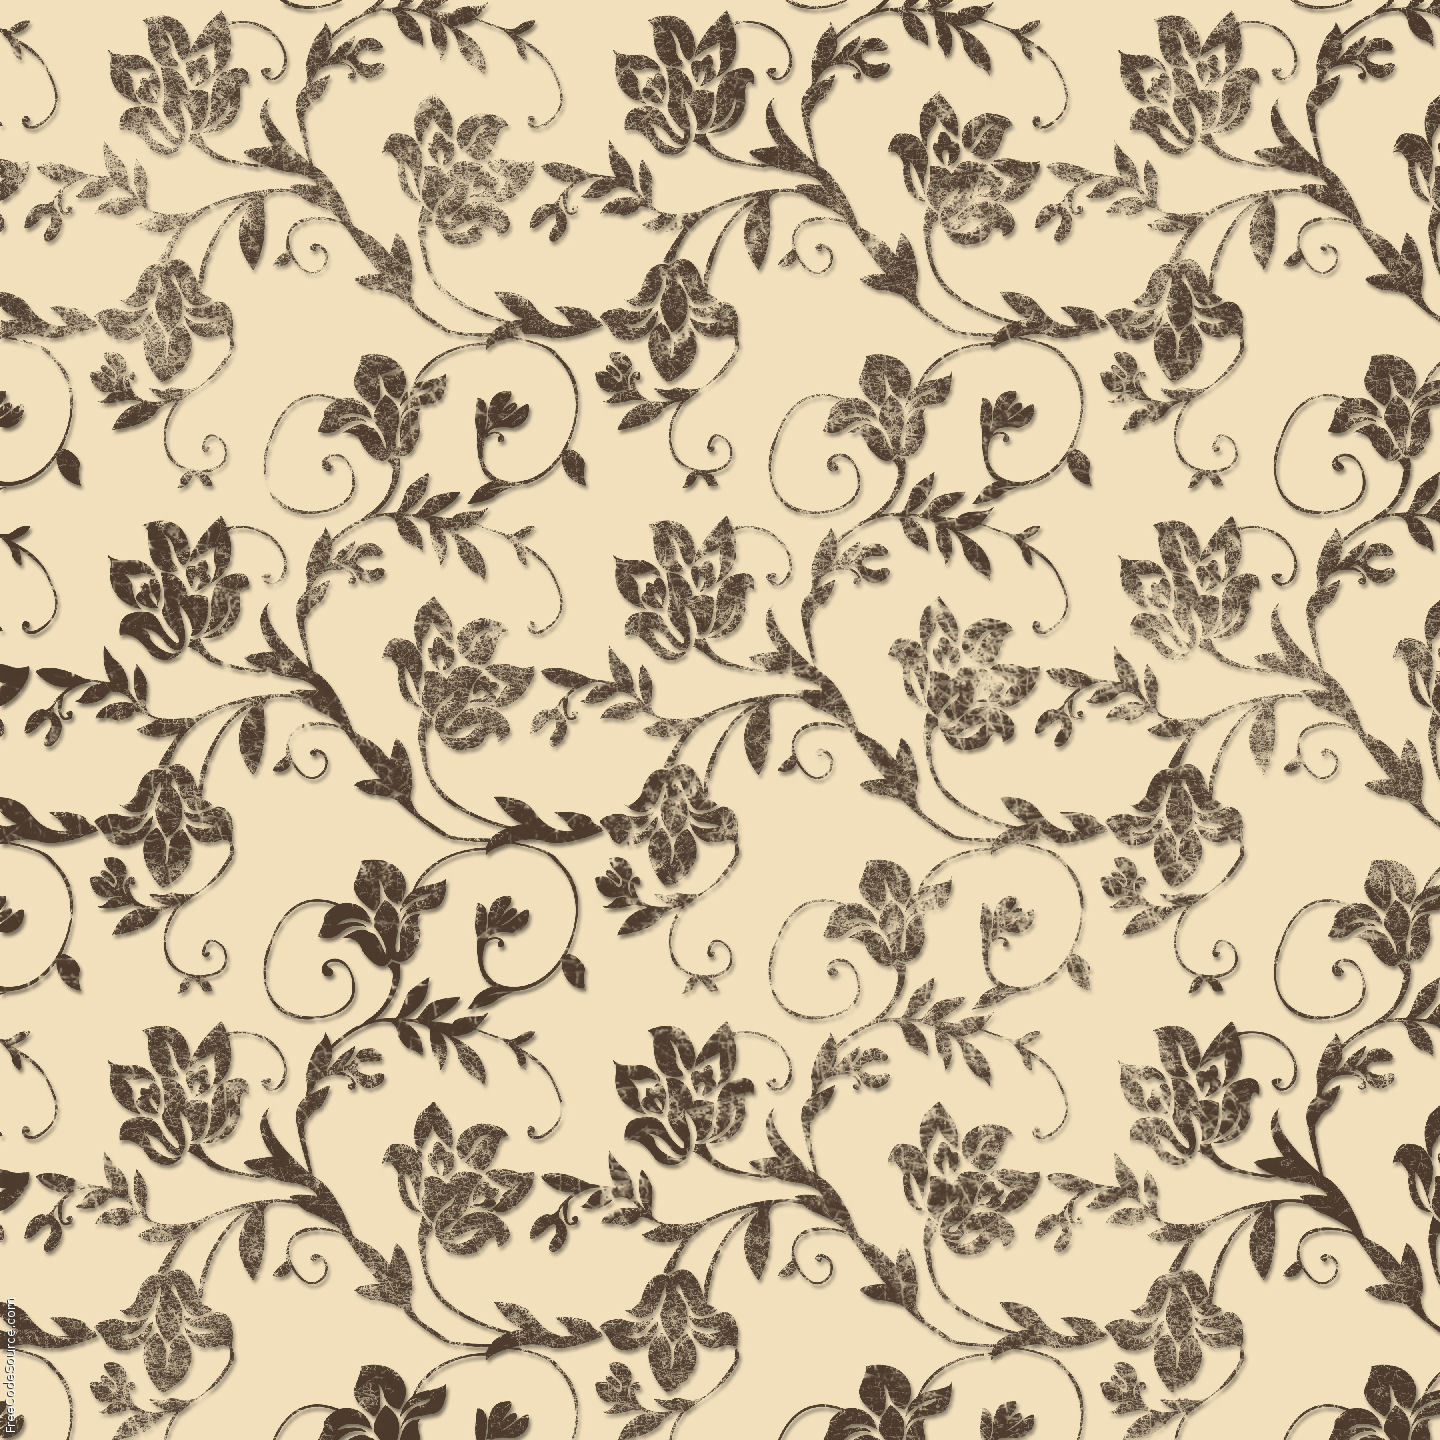 Free Download Floral Design 2 Formspring Backgrounds Floral Design